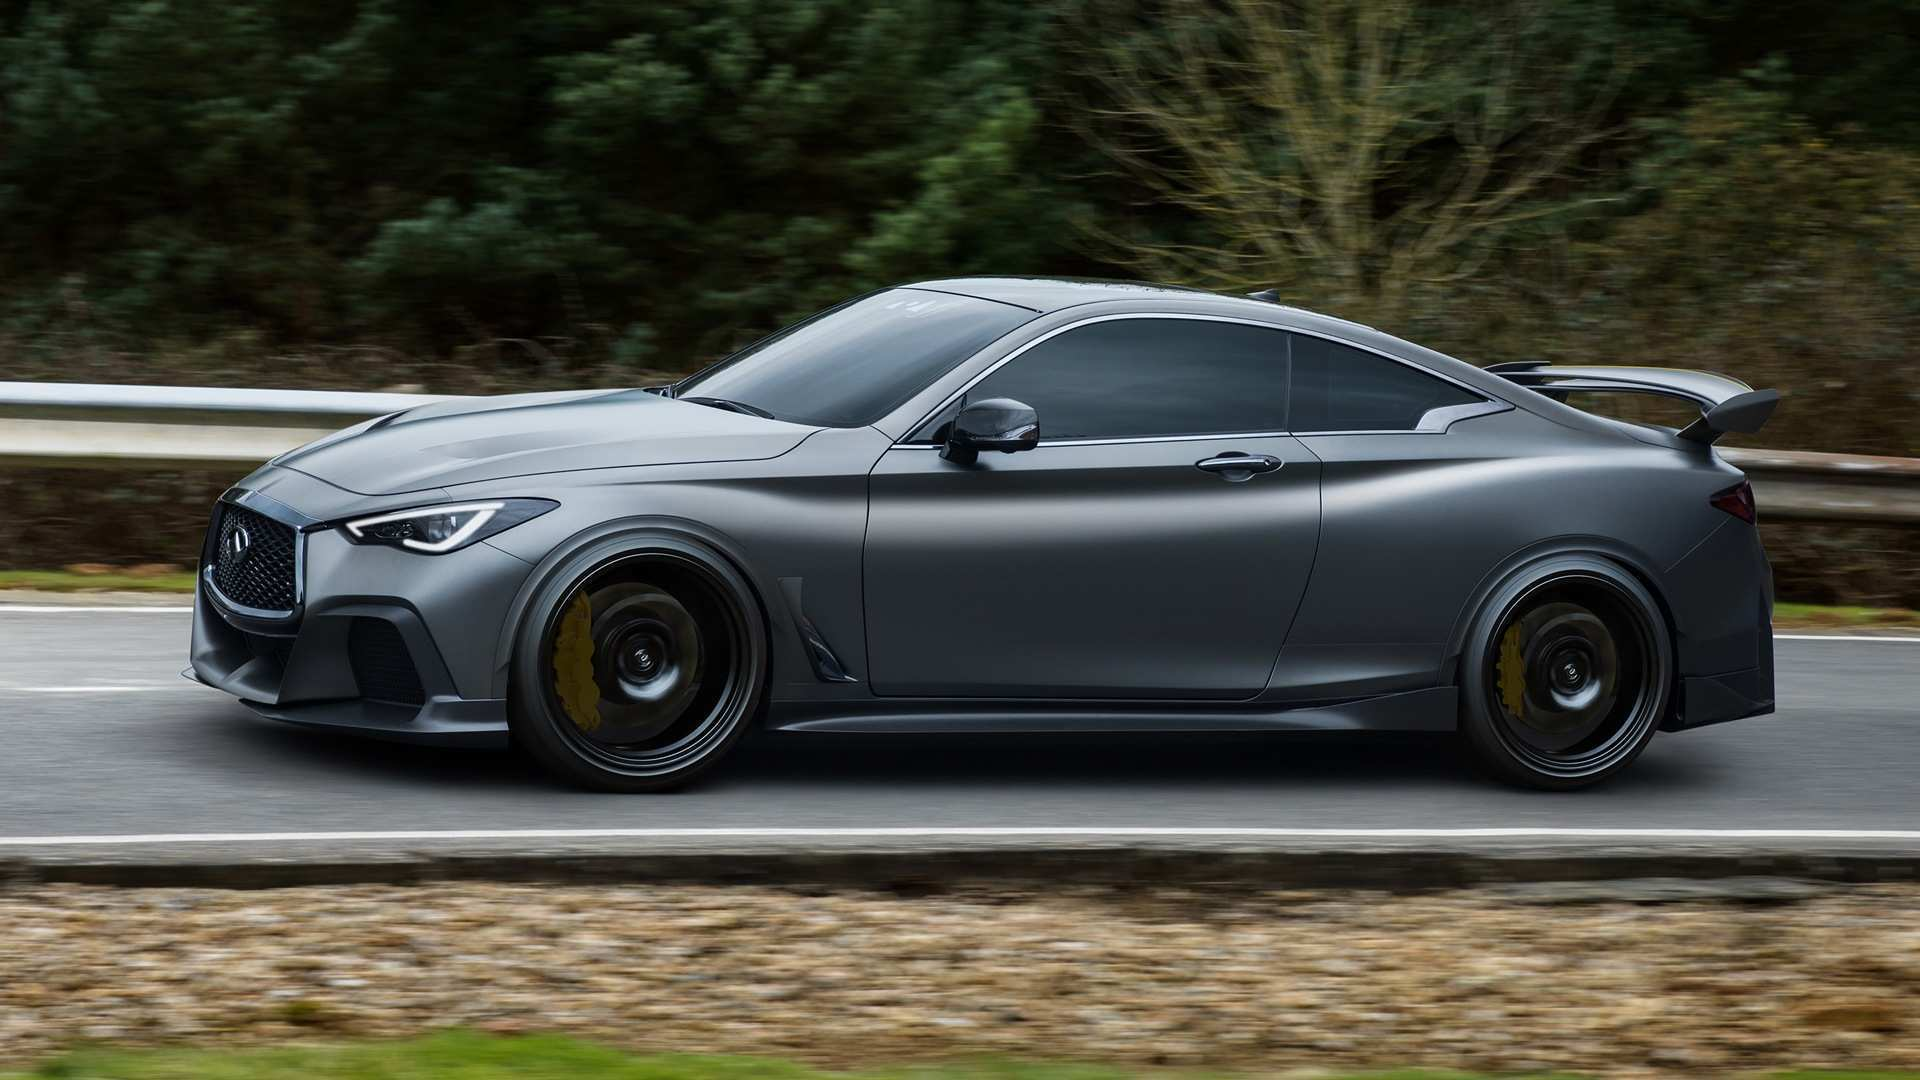 70 All New Infiniti Q60 2020 Pricing